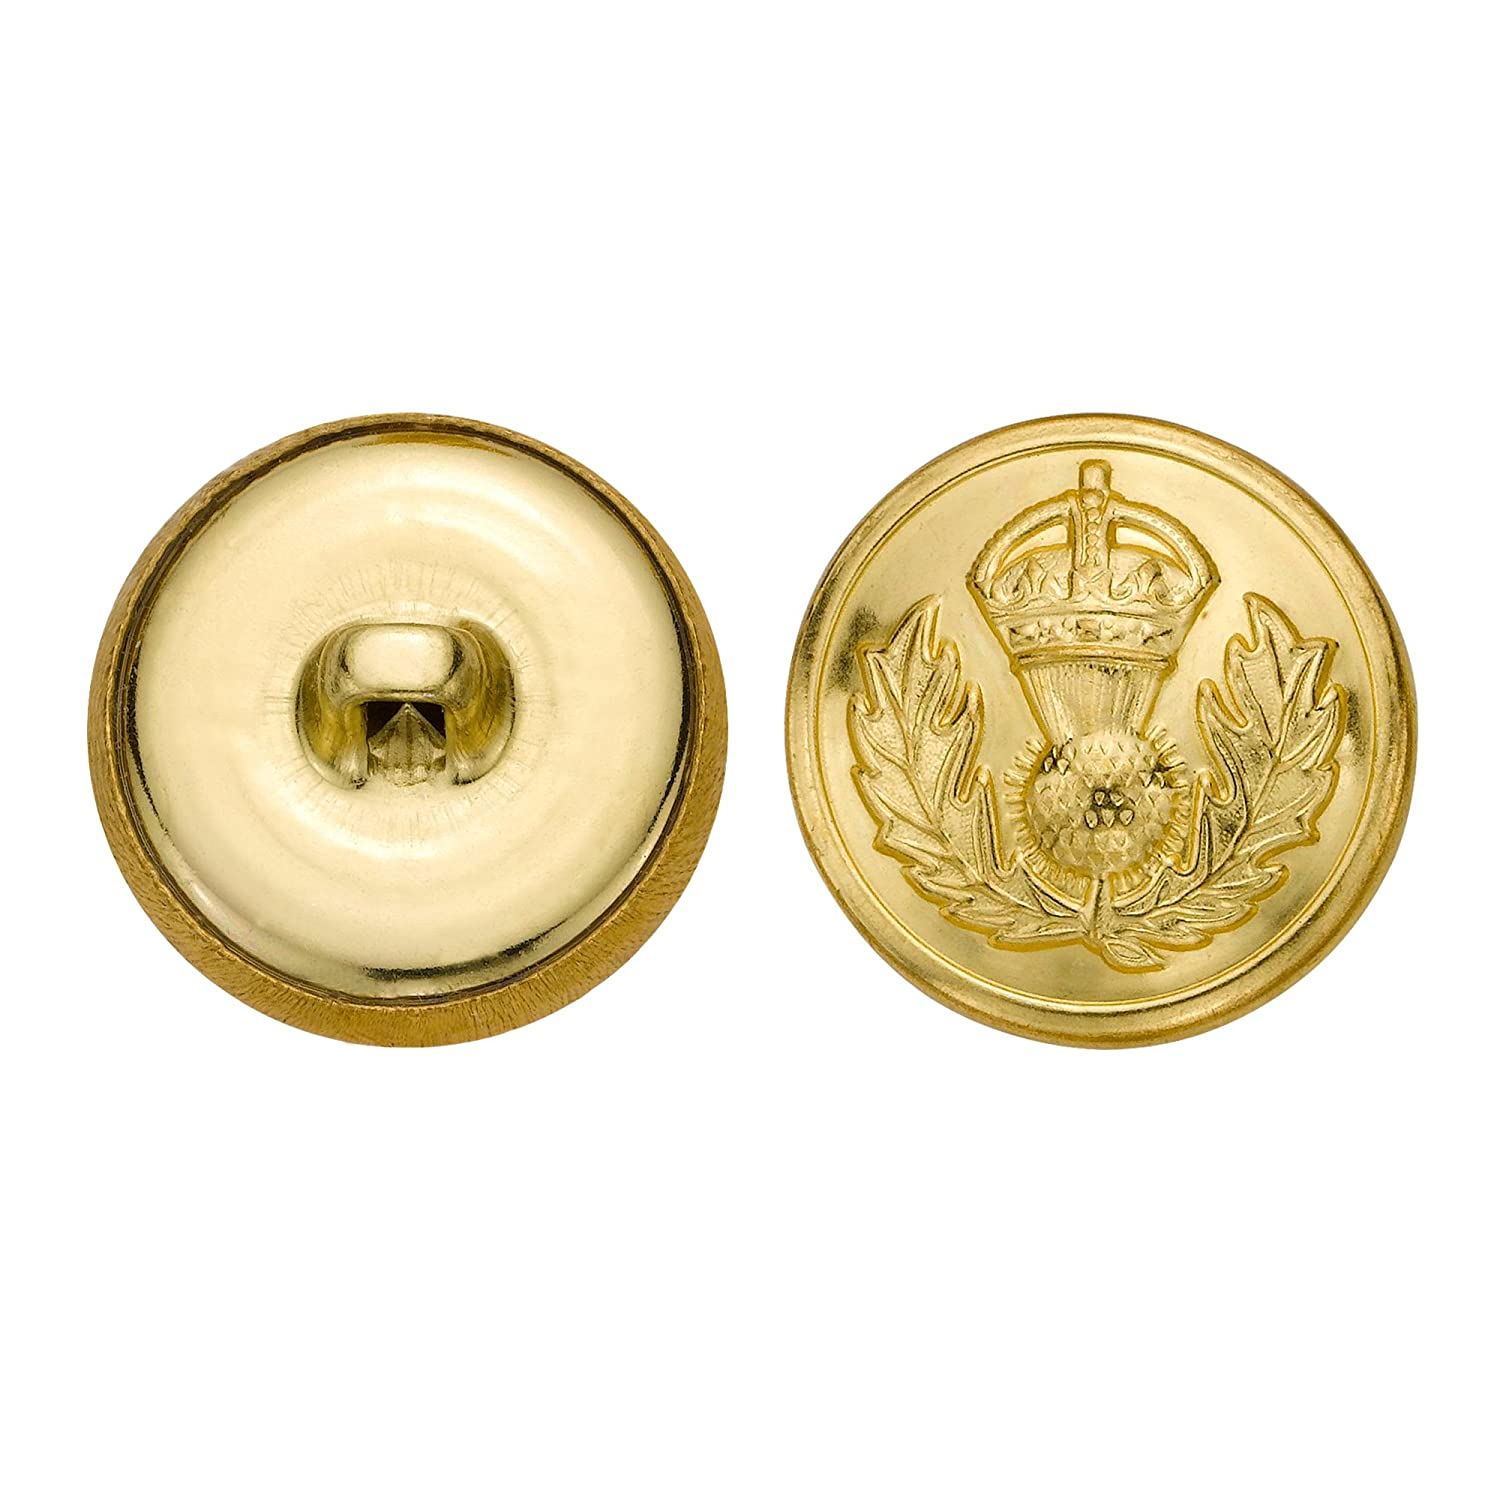 Size 33 Ligne C/&C Metal Products 5296 Crown Crest Metal Button 36-Pack C/&C Metal Products Corp Gold